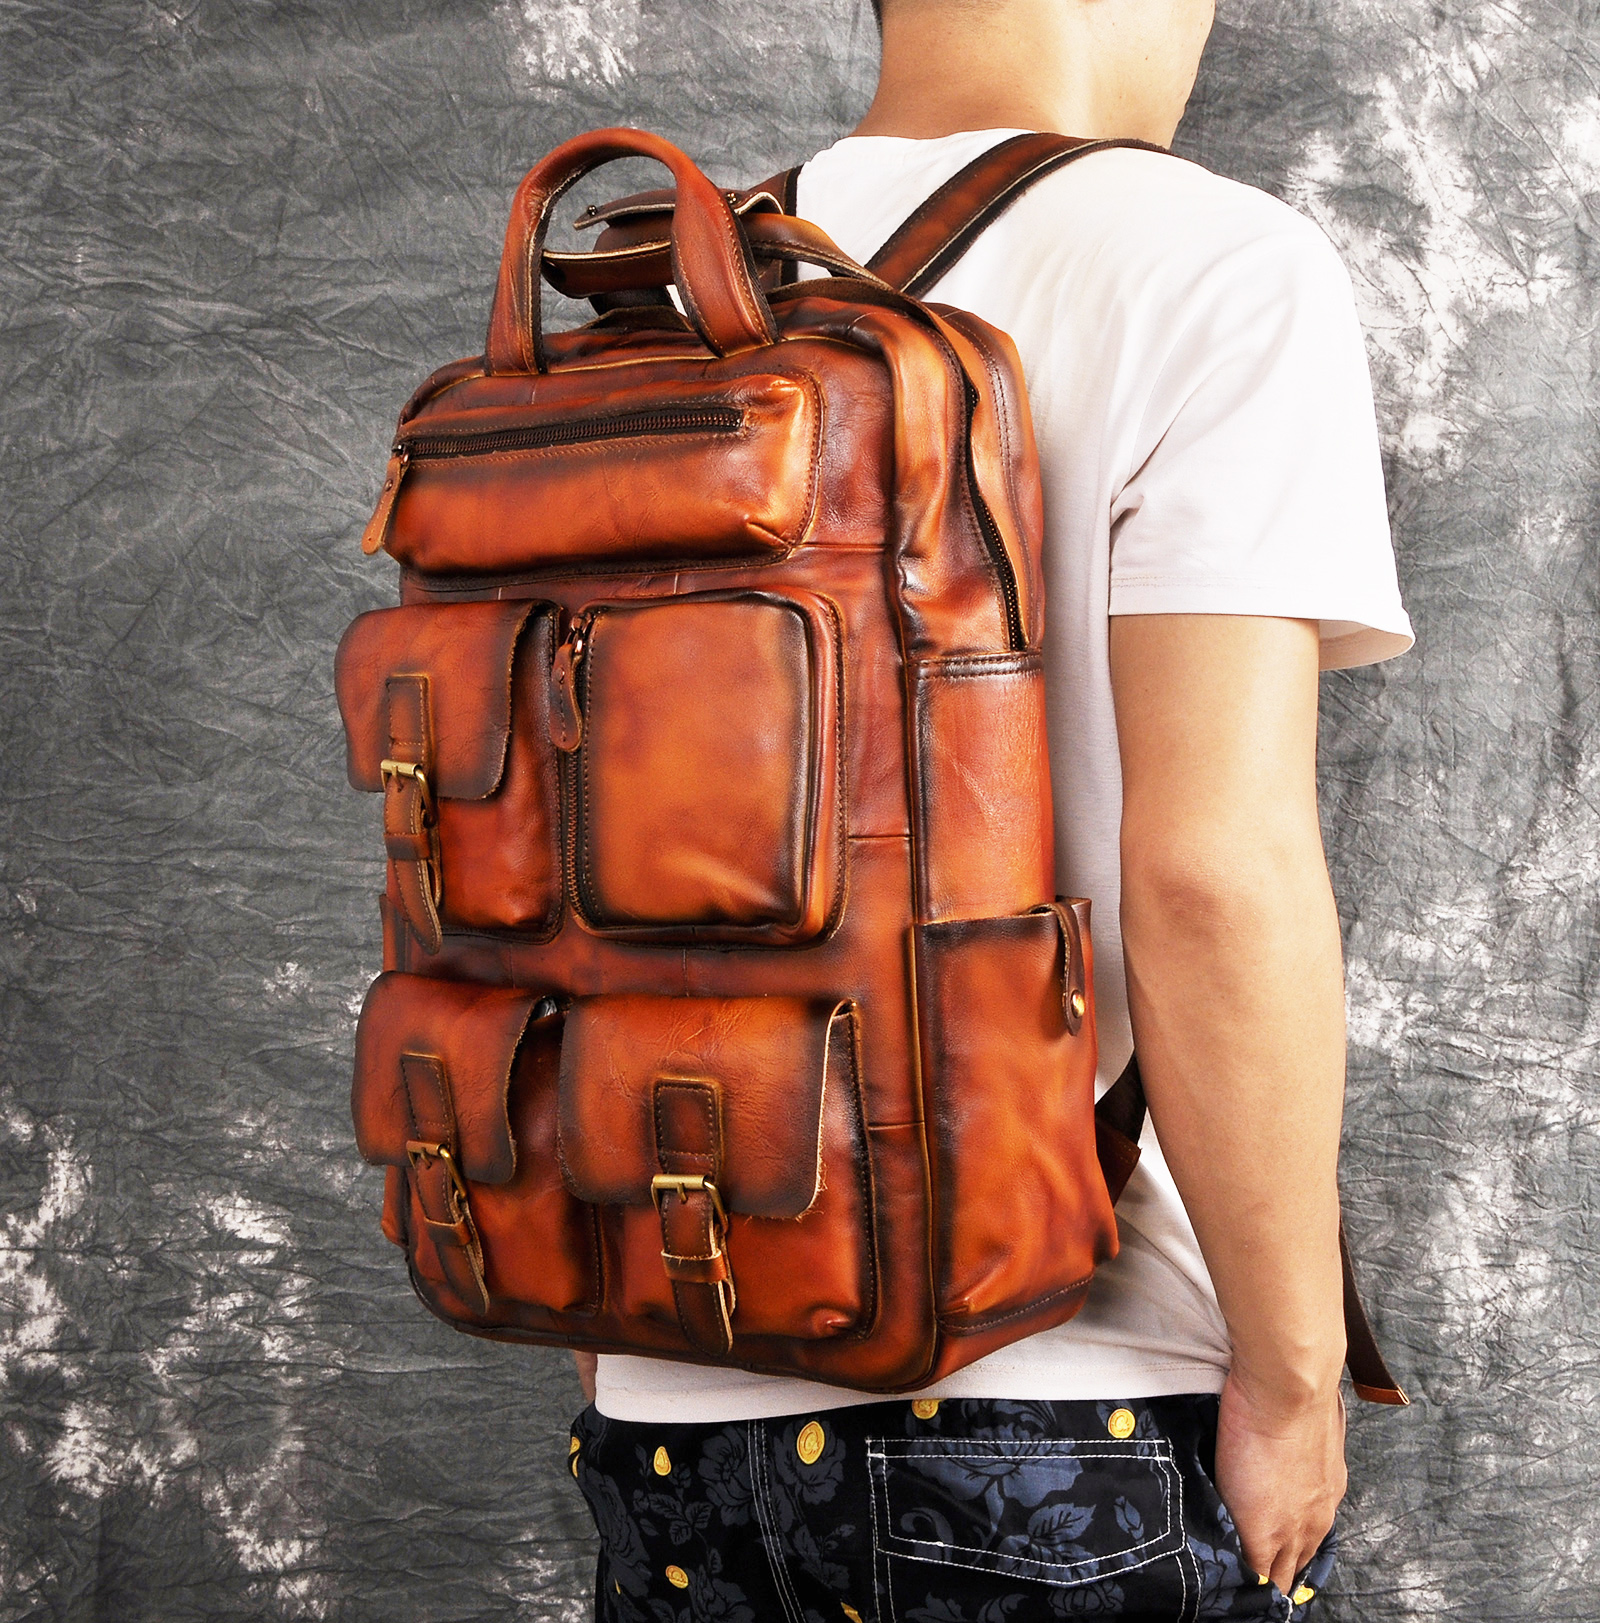 Design Male Leather Casual Fashion Heavy Duty Travel School University College 17 Laptop Bag Design Backpack Daypack Men 1170-o image